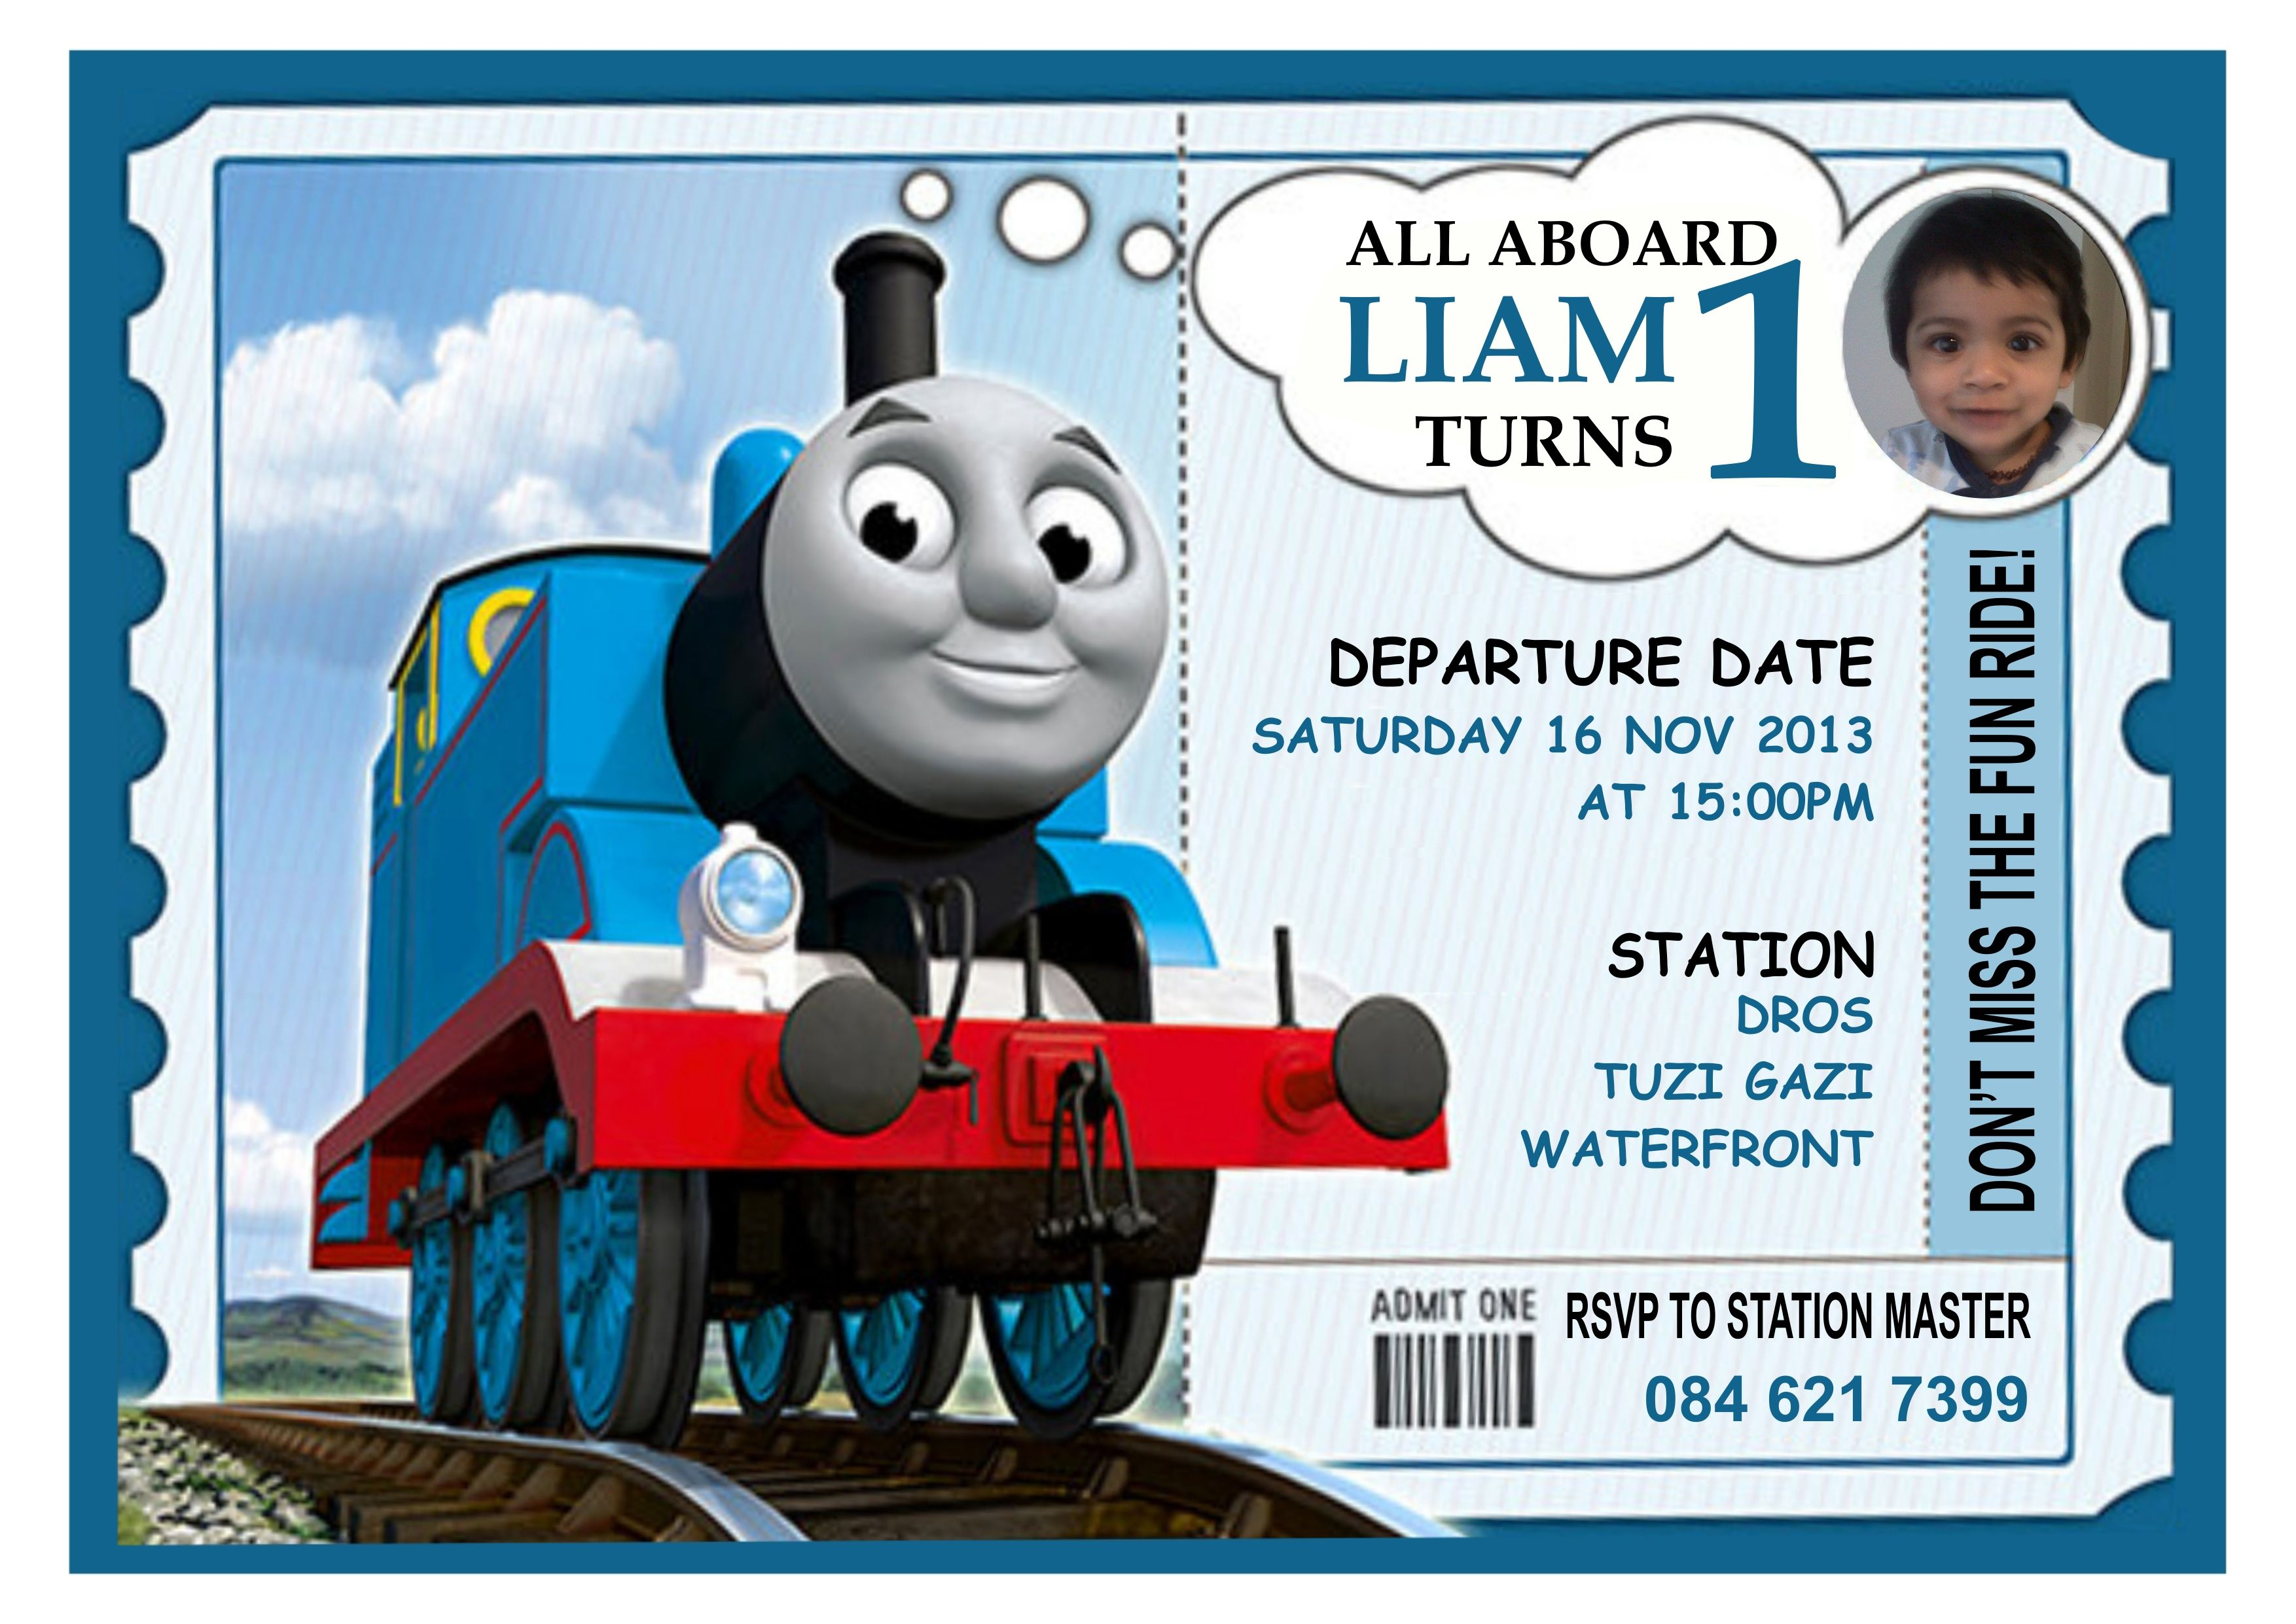 Best Thomas The Train Birthday Invitations Free Check More At Http Www Ow Train Birthday Invitations Birthday Party Invitation Templates Birthday Invitations